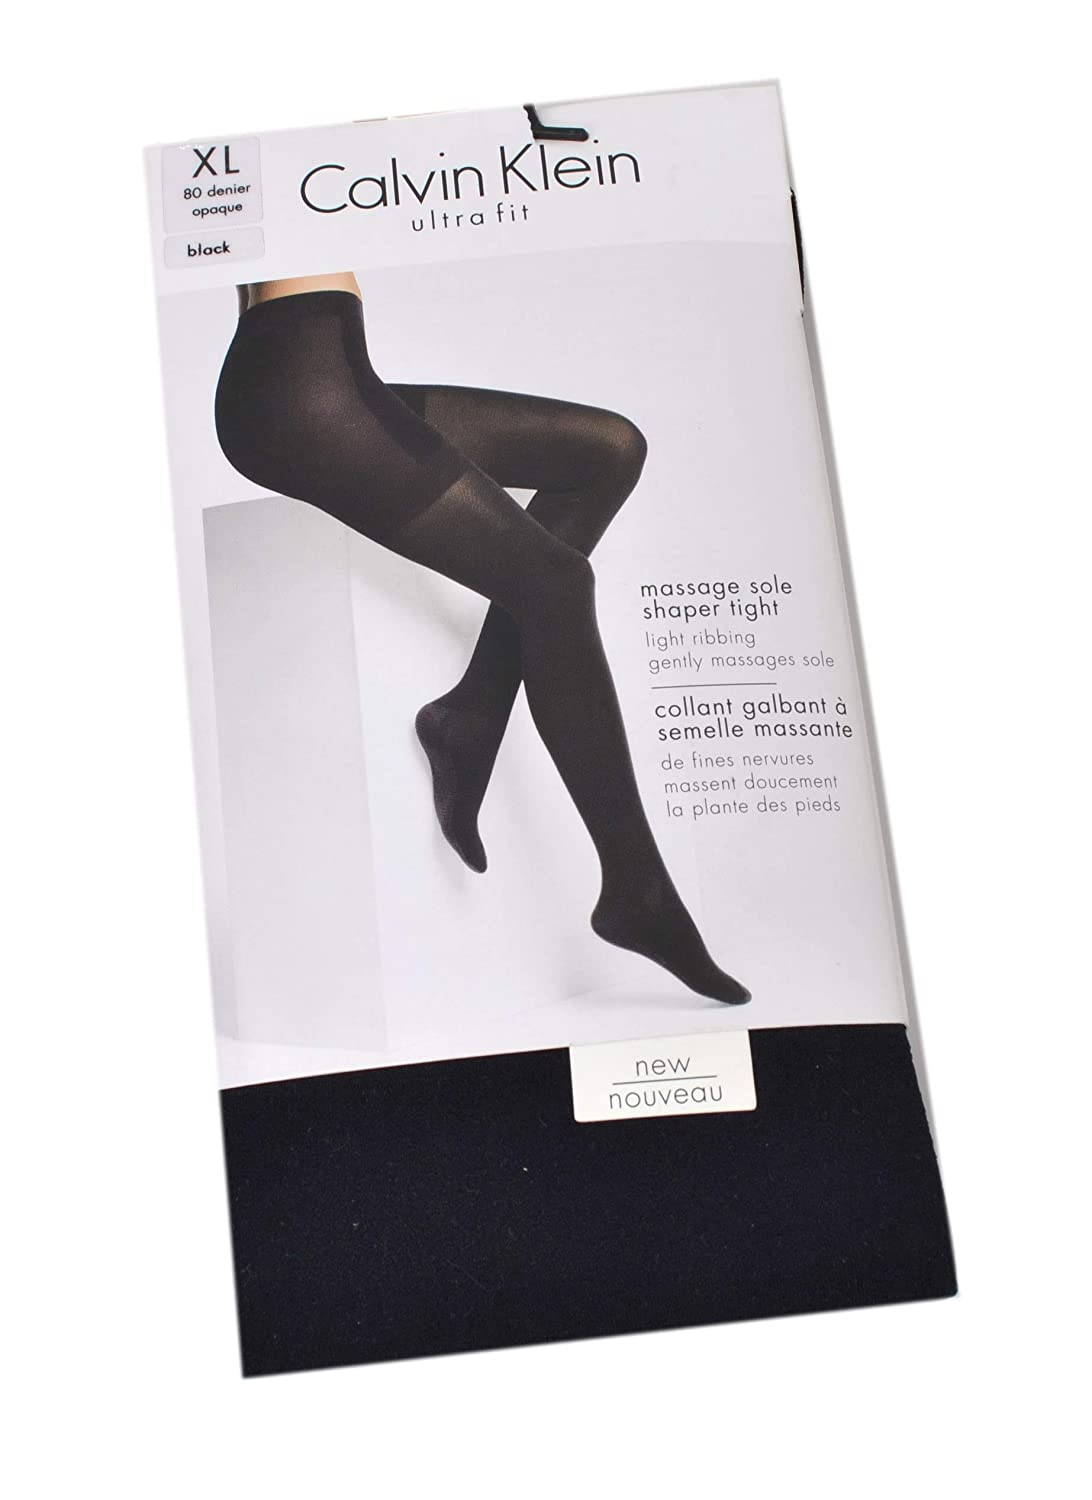 70ddffd0922bc Calvin Klein Ultra-Fit Massage-Sole Shaper Tights (XL): Amazon.co.uk:  Clothing